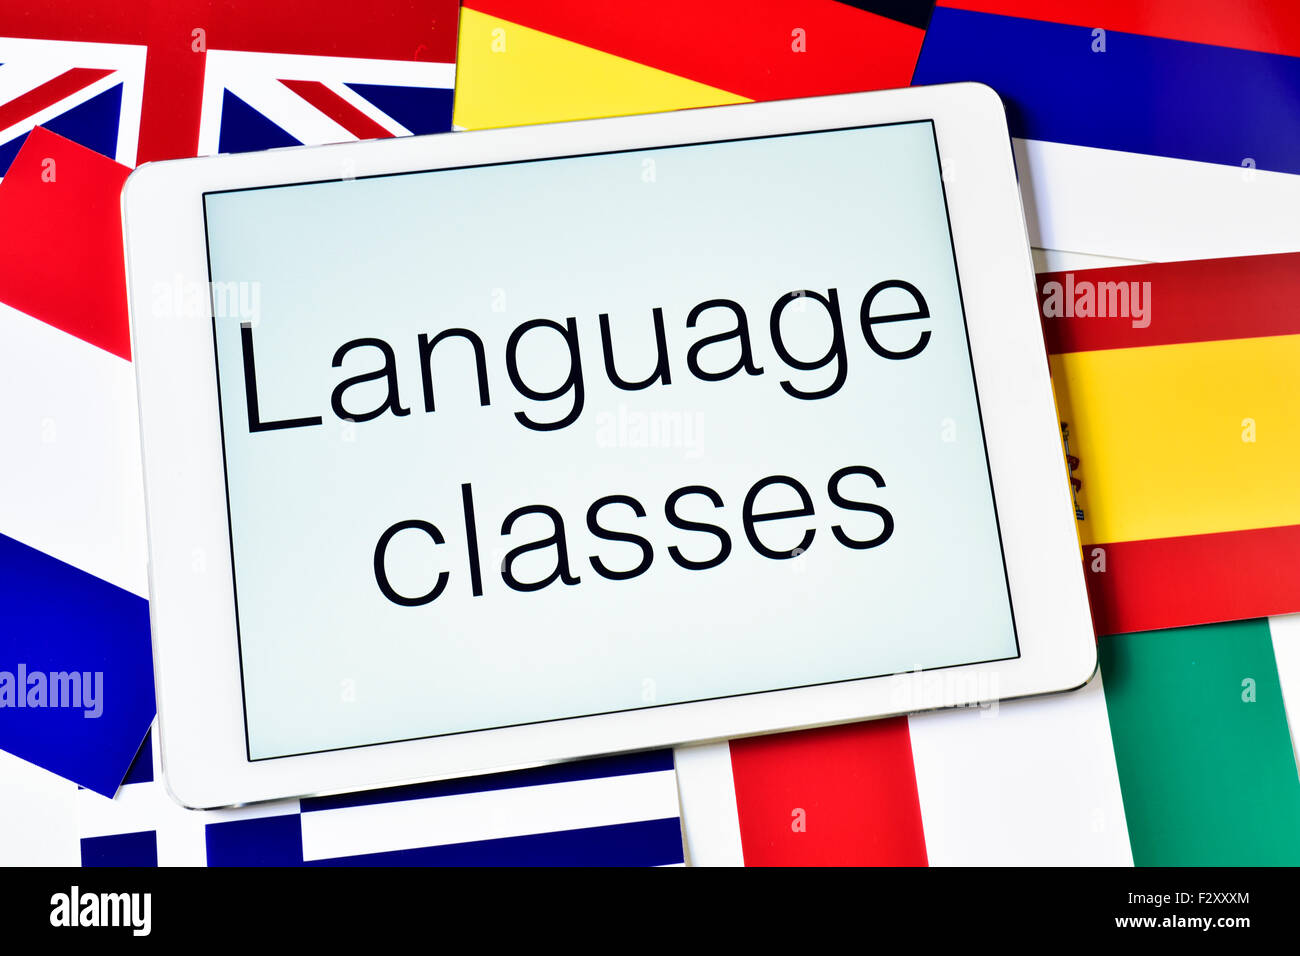 the text language classes in the screen of a tablet computer surrounded by flags of different countries - Stock Image